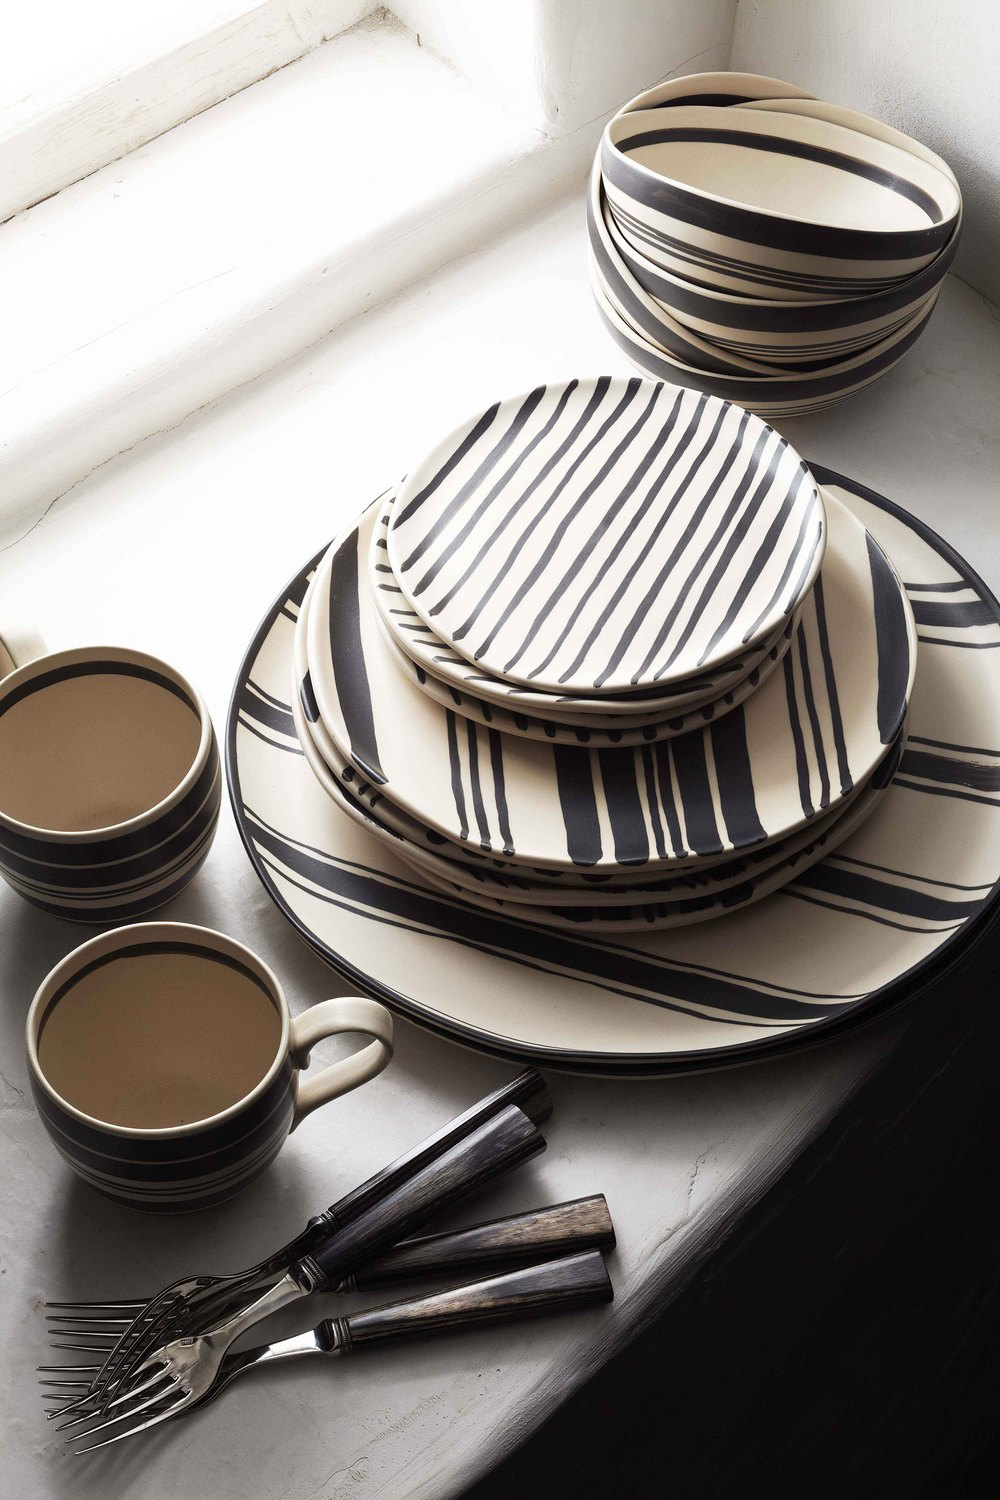 Wythe dinnerware $45-$150 and Zen flatware $295 (five-piece setting)